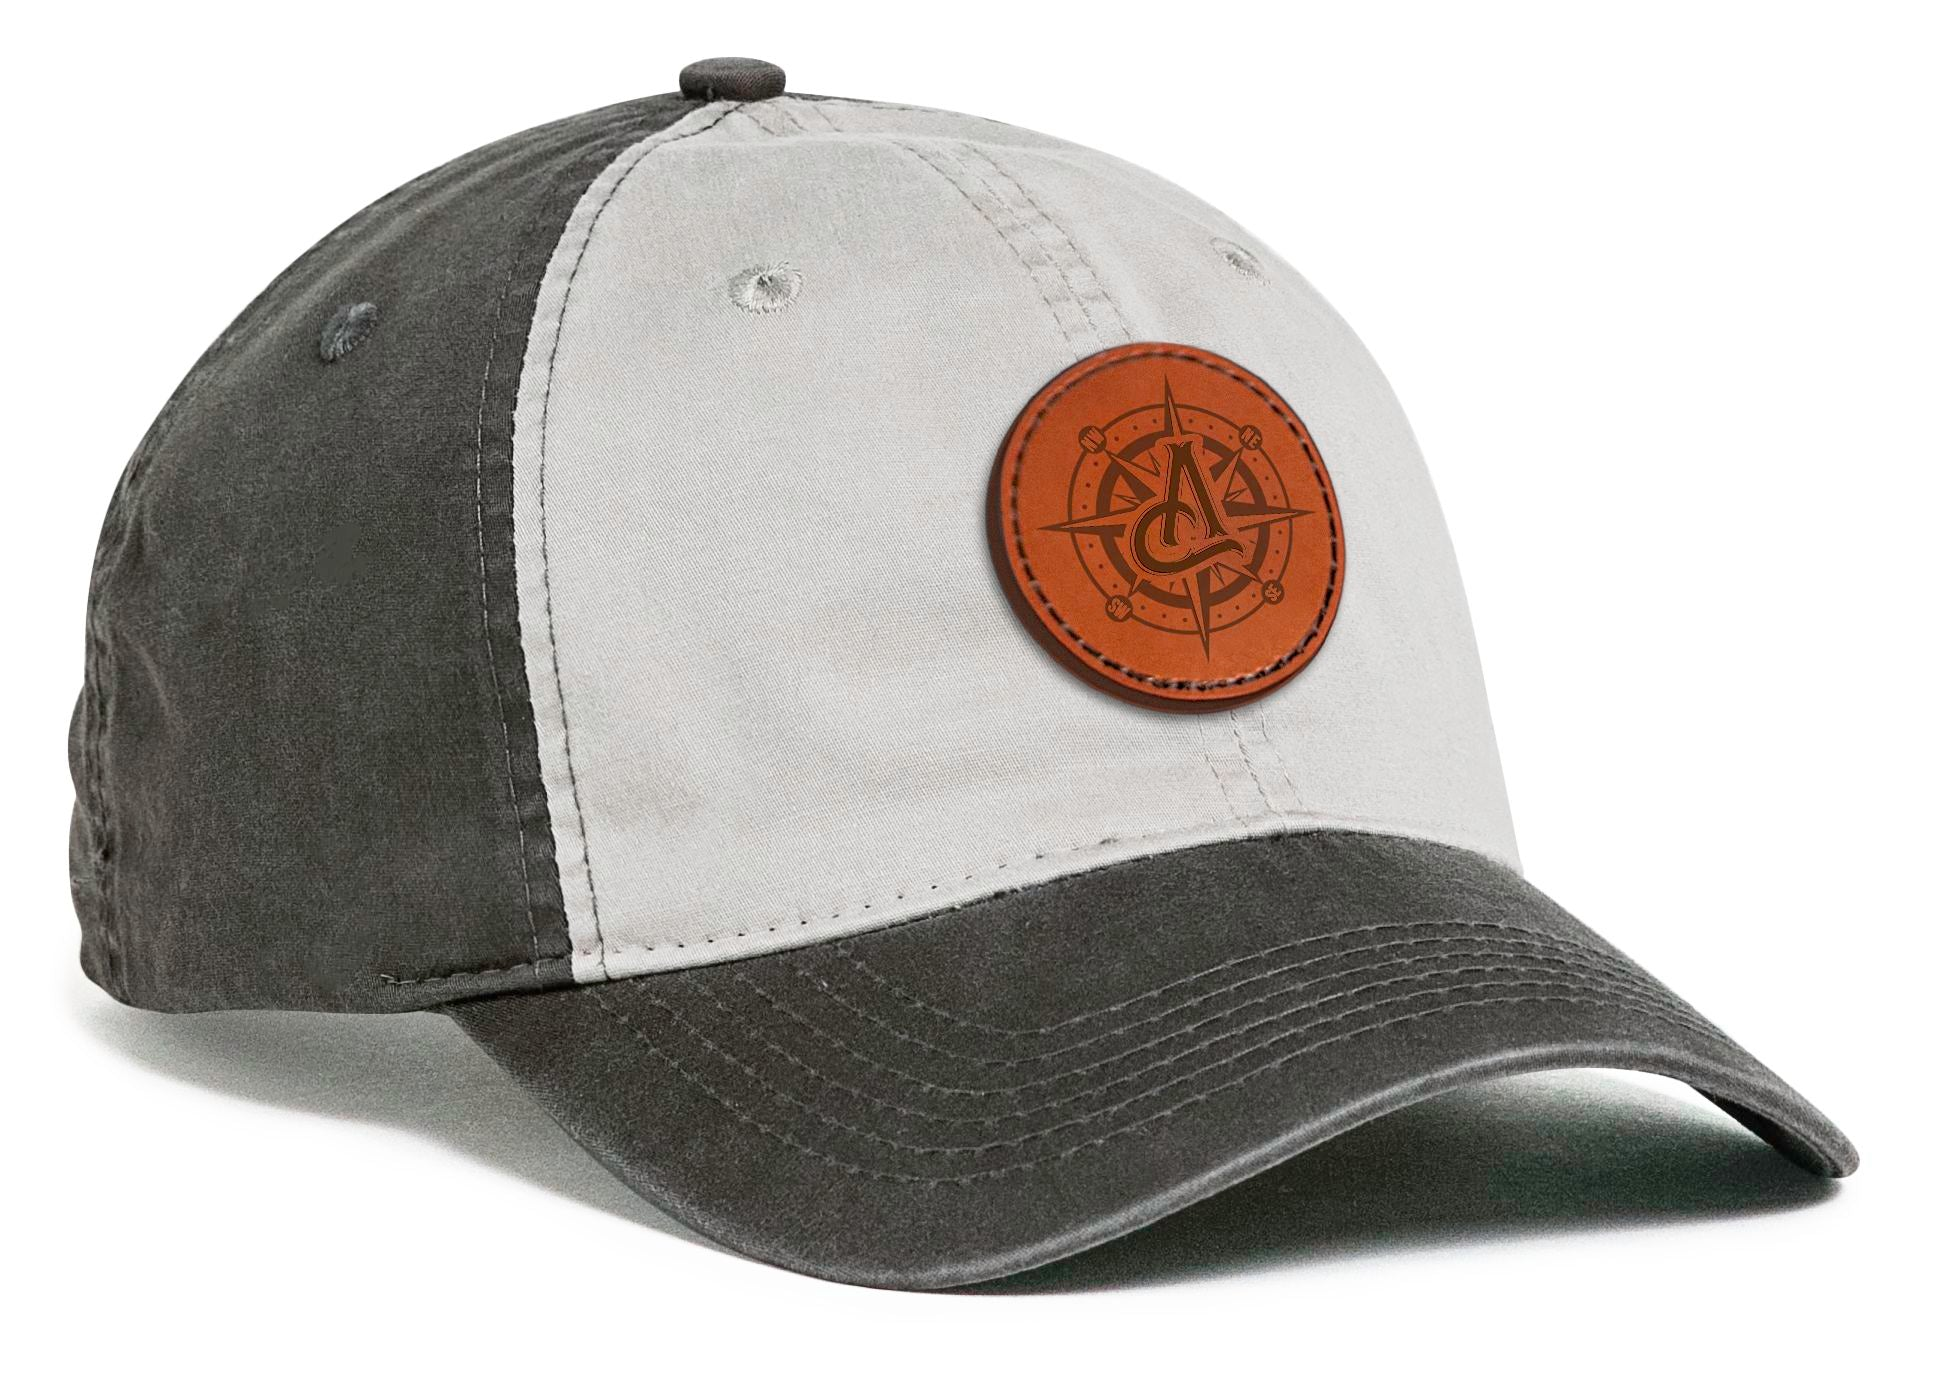 Apparel Catalog Unstructured Hats